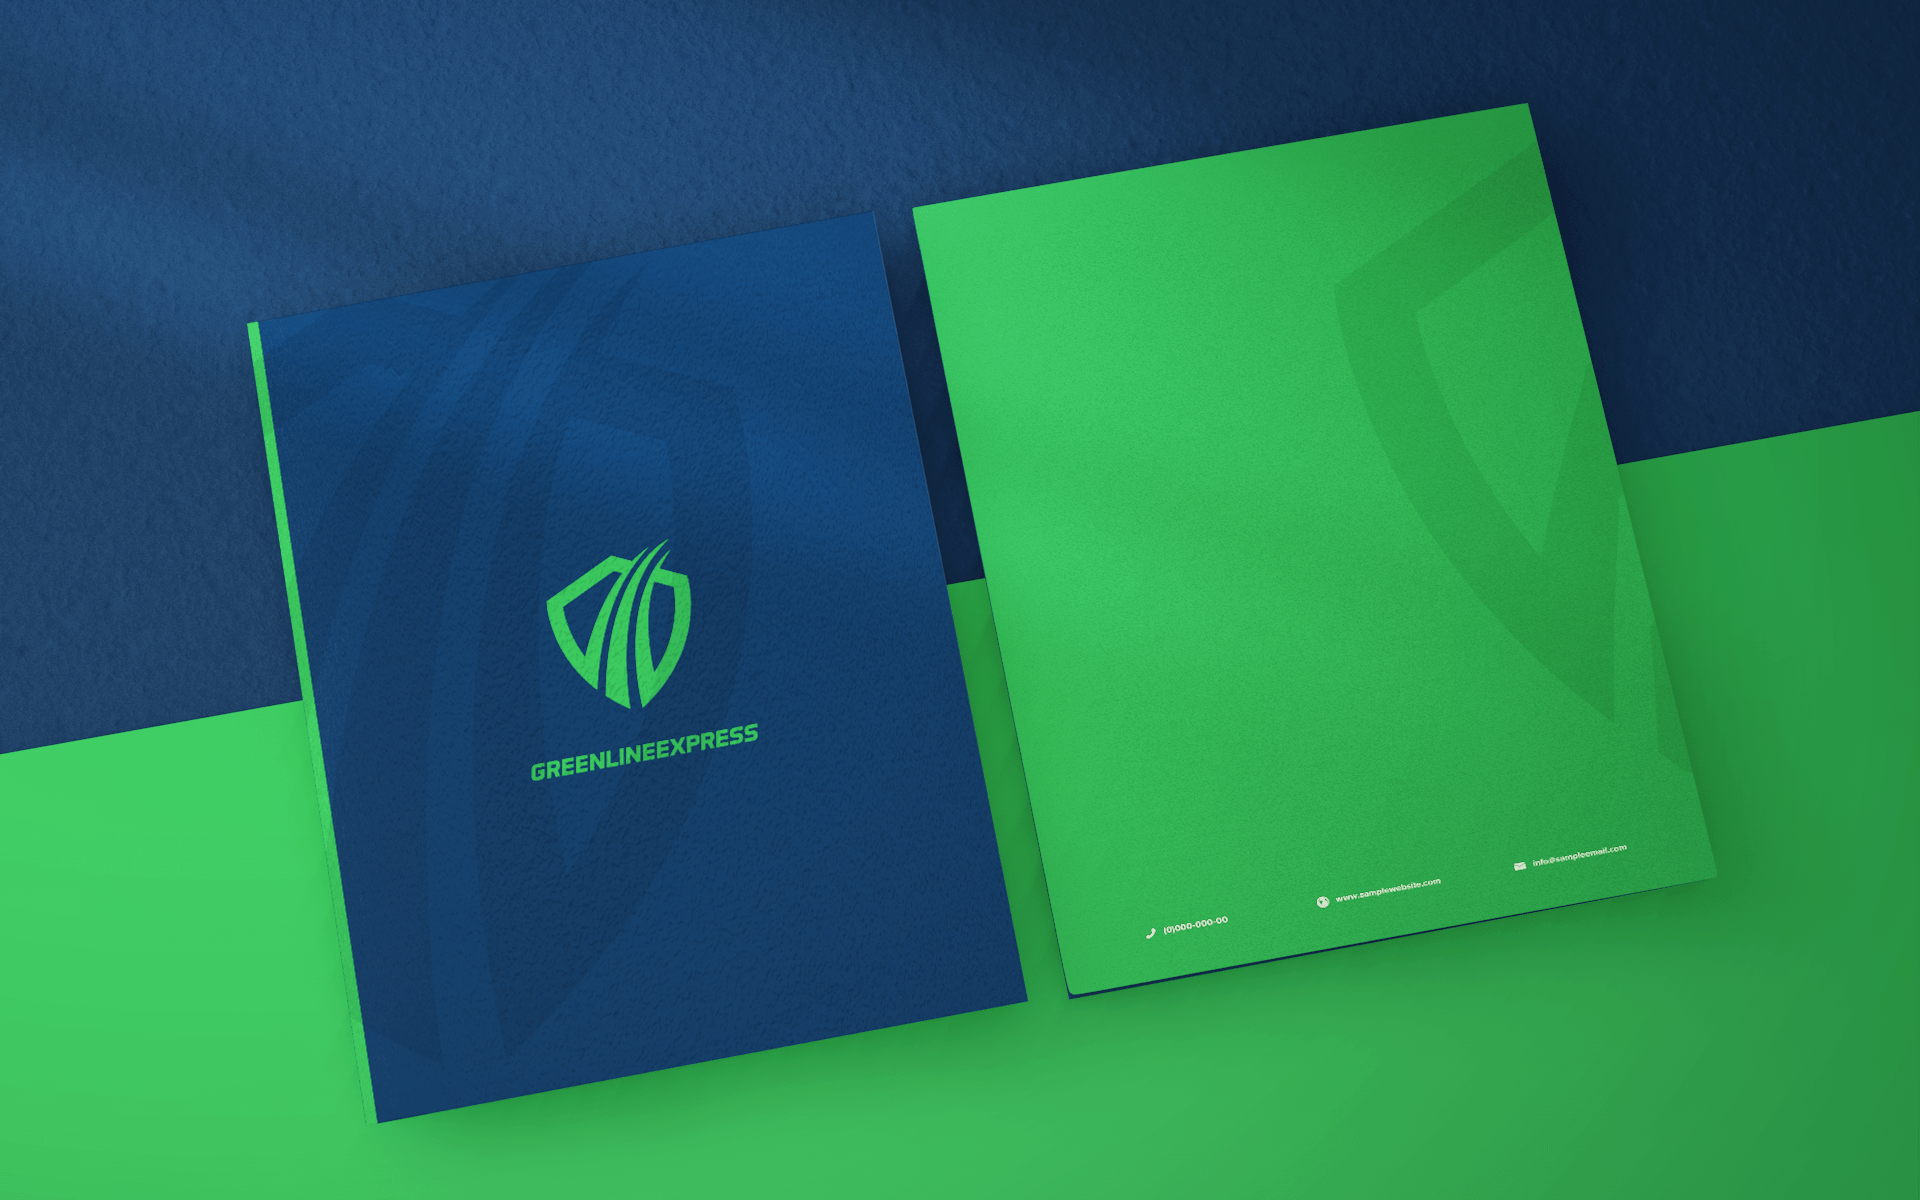 GREENLINE EXPRESS FOLDER DESIGN